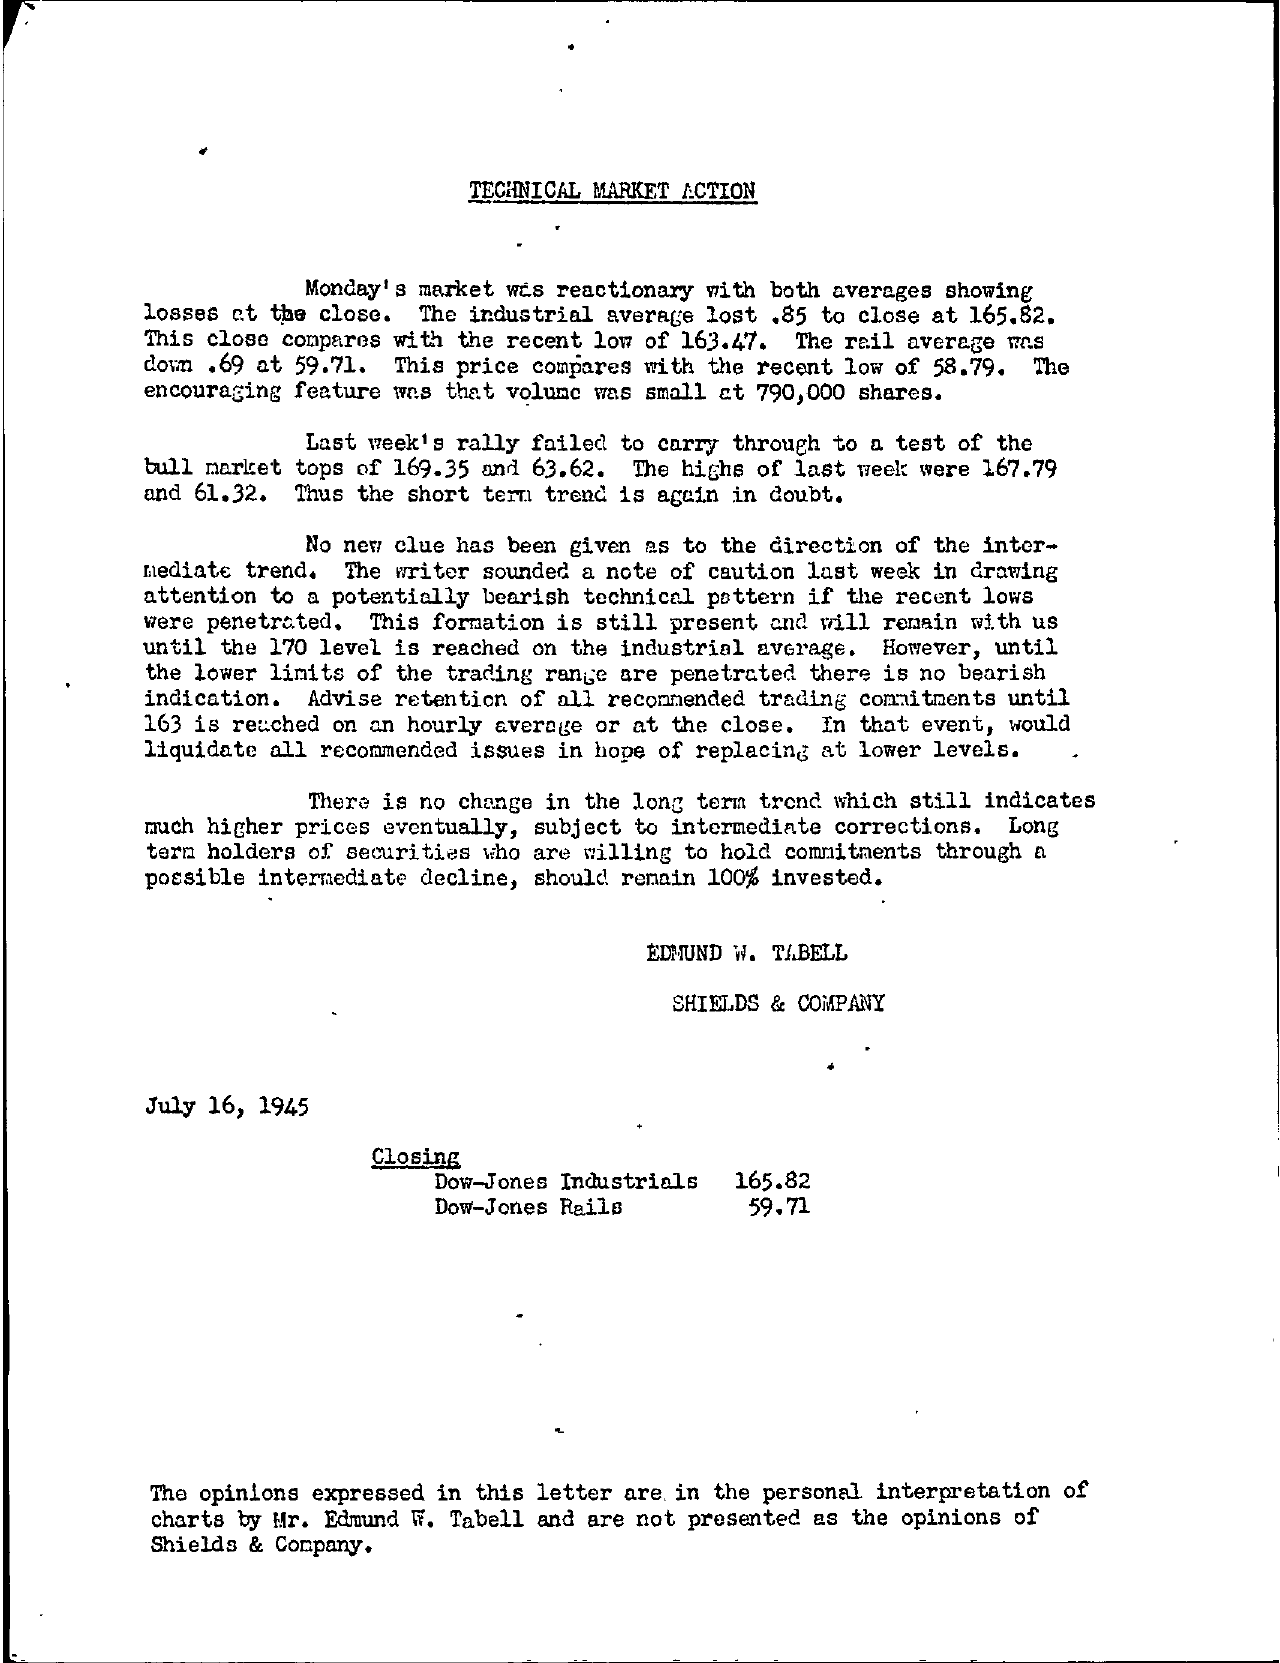 Tabell's Market Letter - July 16, 1945